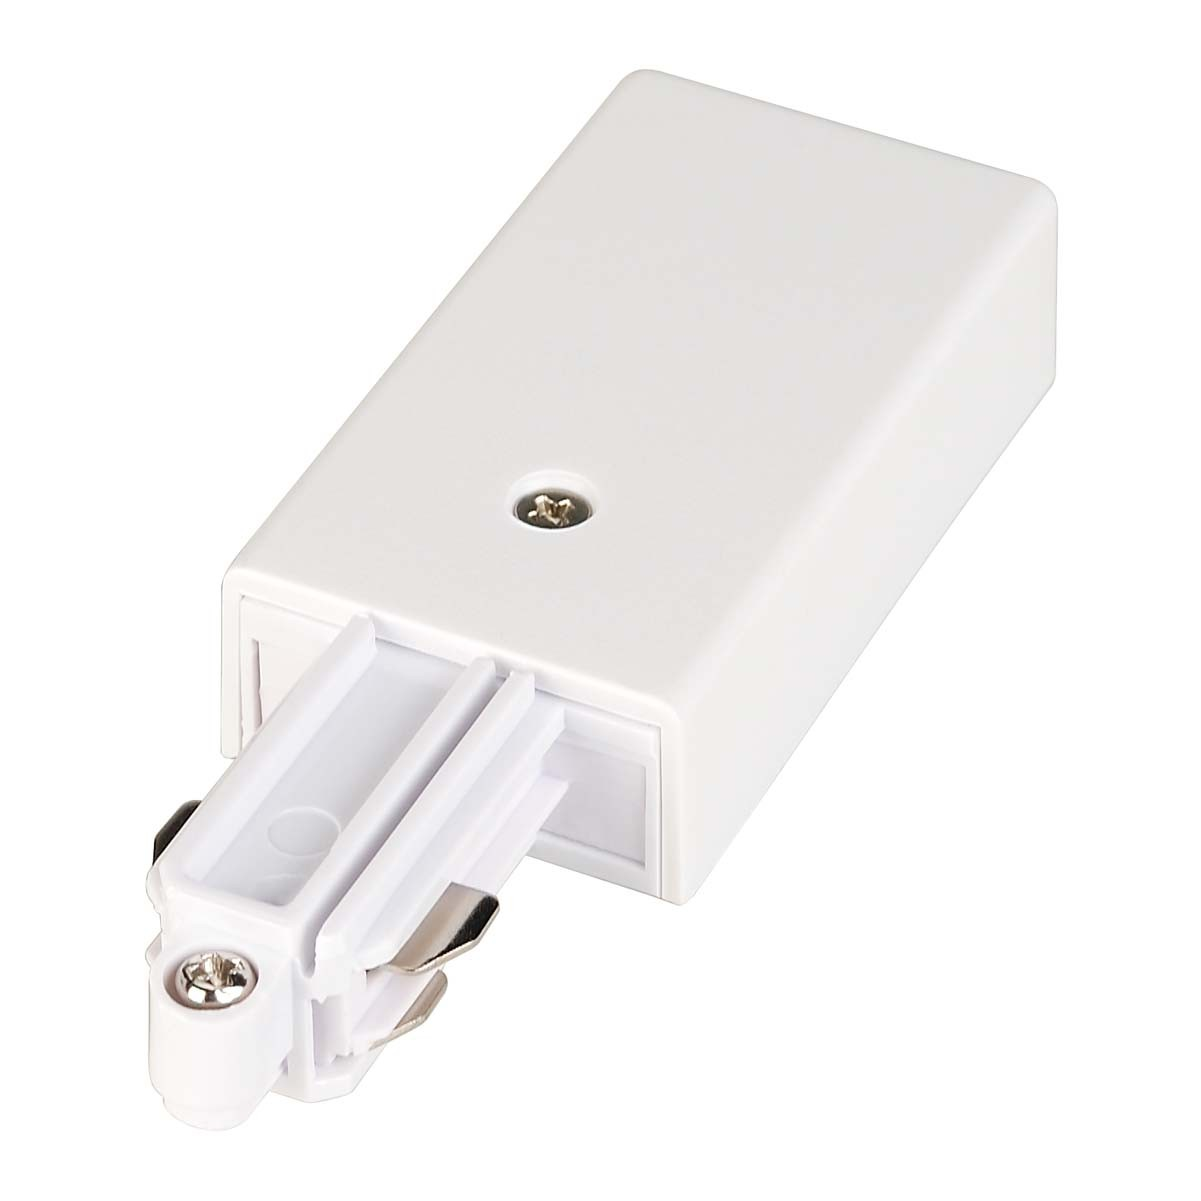 SLV 143041 Feed In Earth Right White 1 Circuit 240V Track Accessory